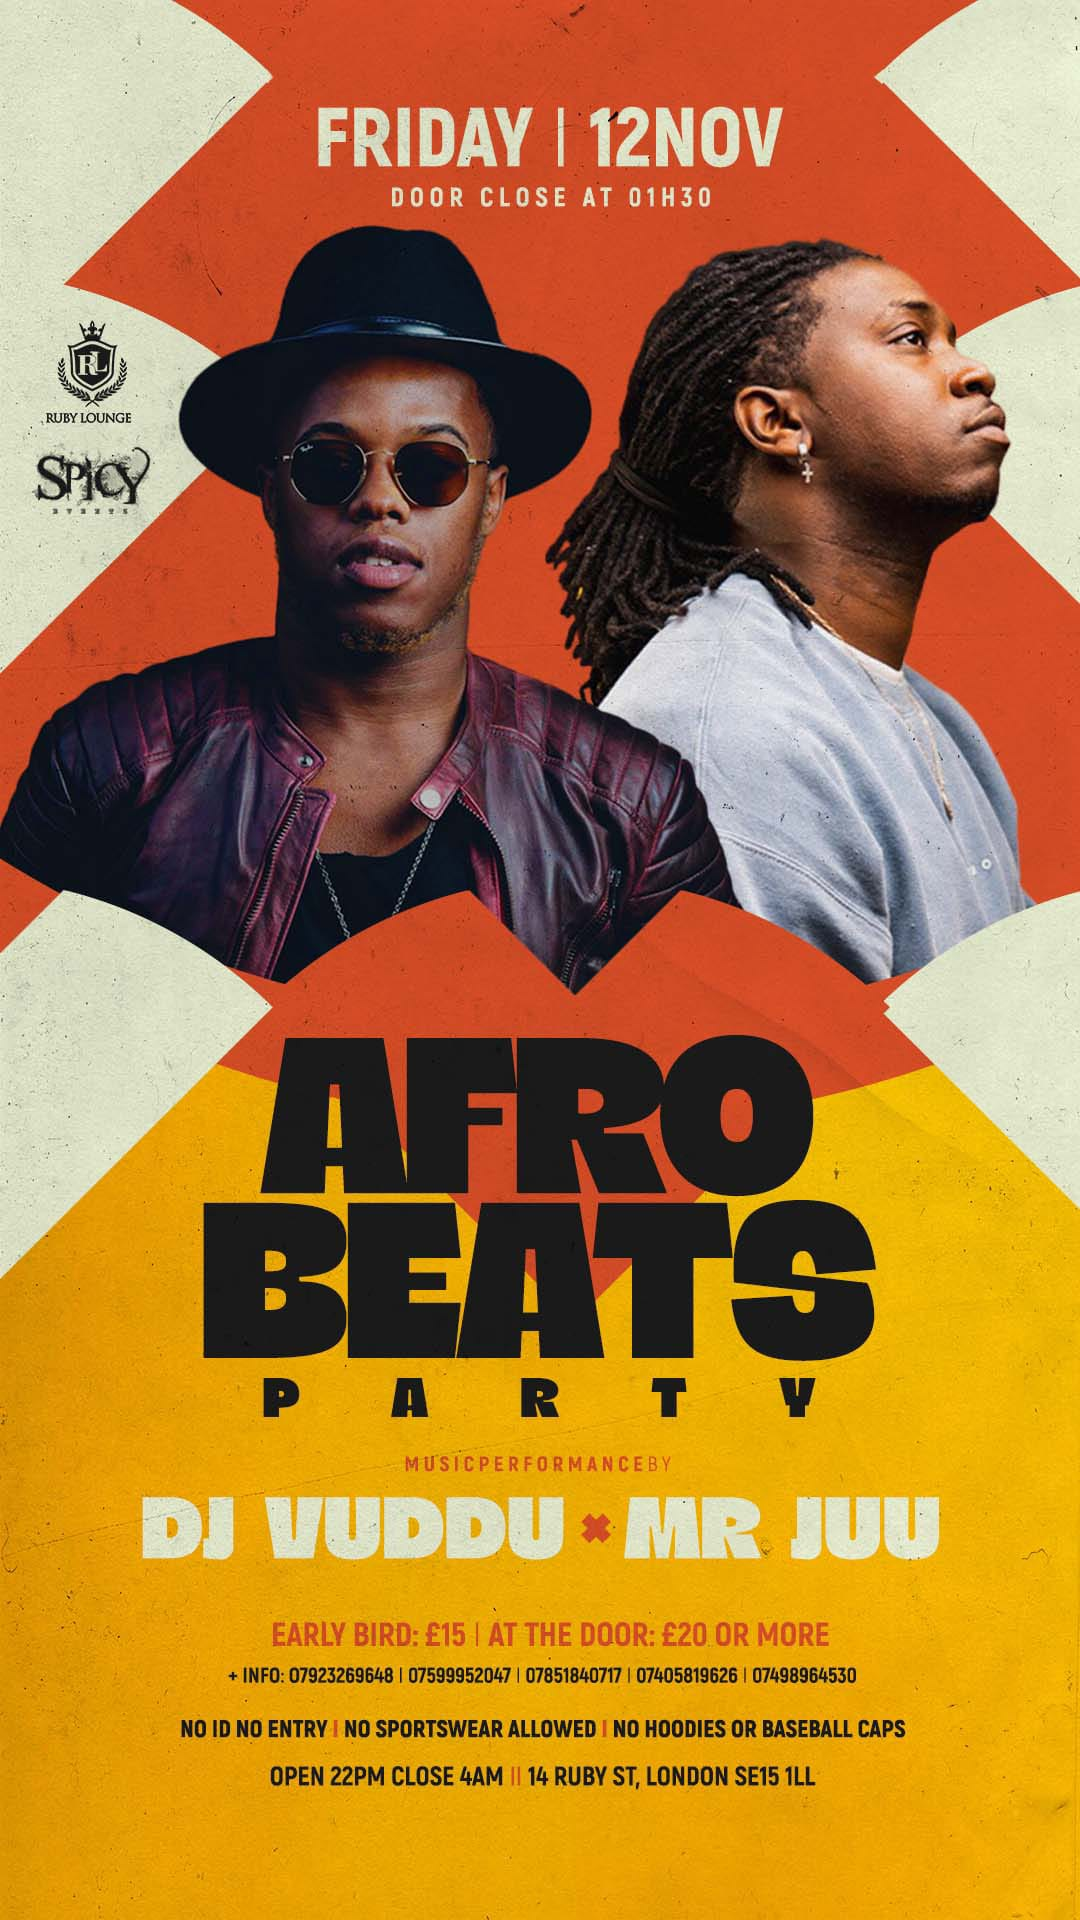 Ruby Lounge Fridays -  Afro Beats Party